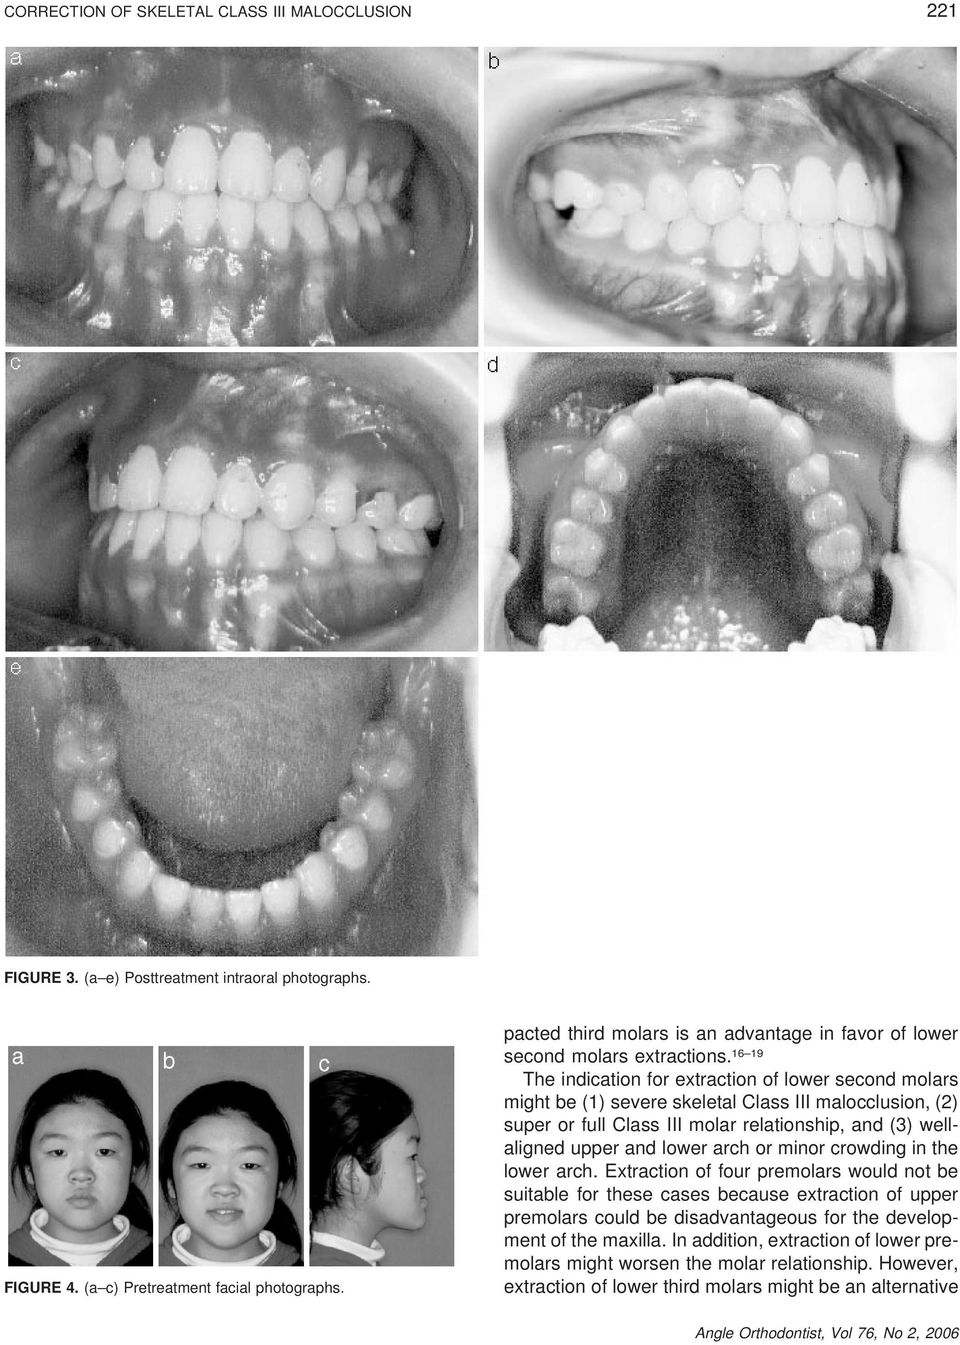 16 19 The indication for extraction of lower second molars might be (1) severe skeletal Class III malocclusion, (2) super or full Class III molar relationship, and (3) wellaligned upper and lower